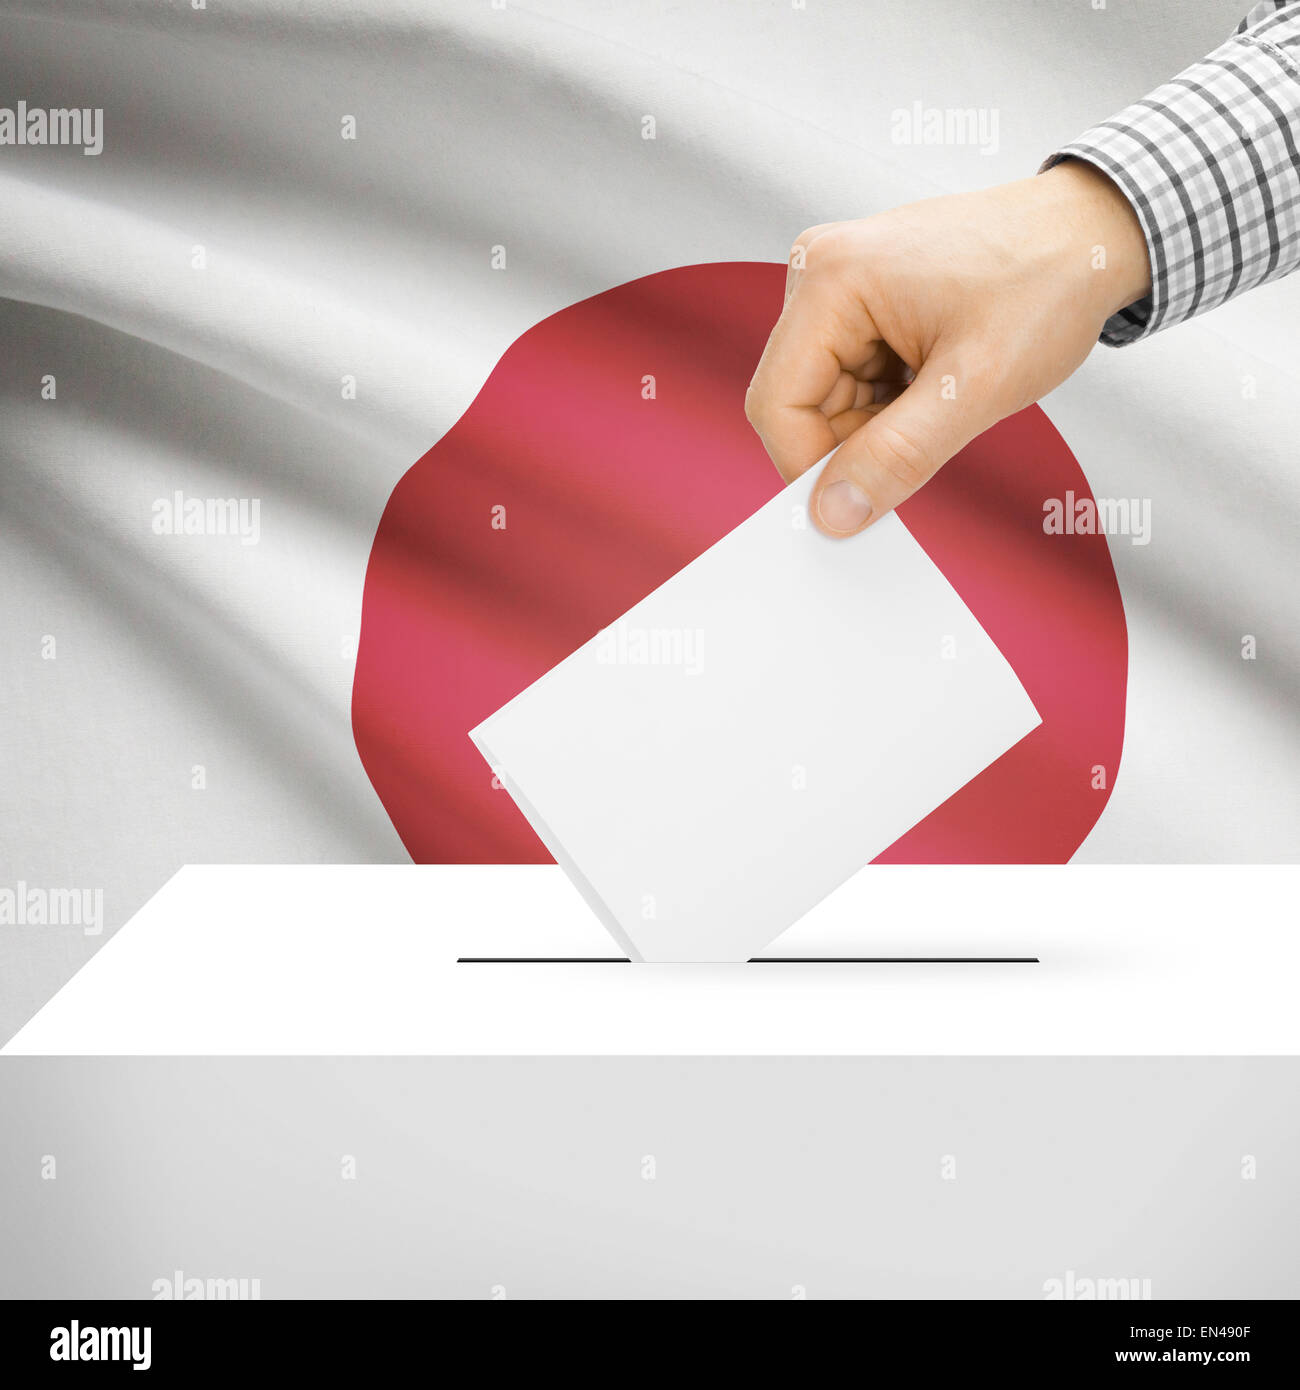 Ballot box with national flag on background series - Japan Stock Photo